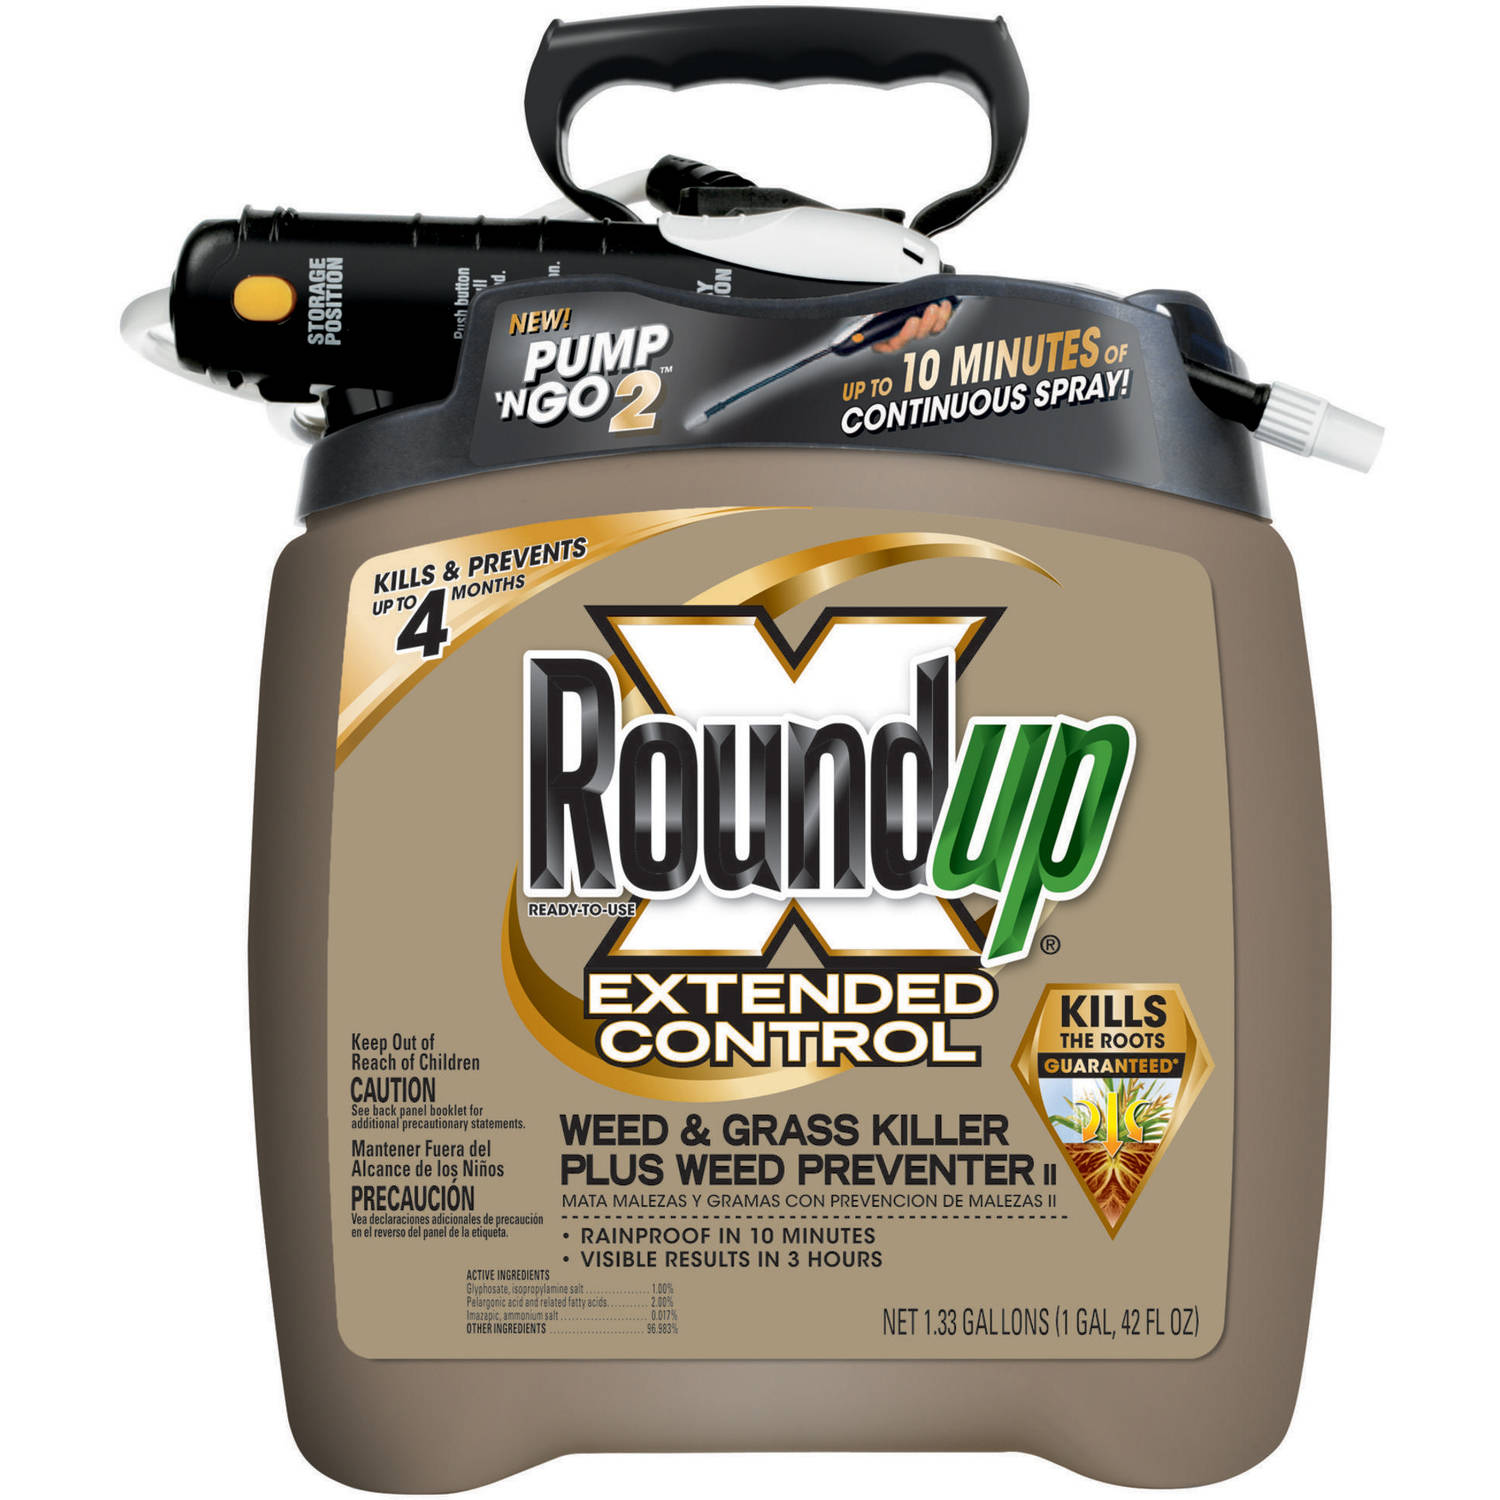 Roundup Extended Ready-To-Use Control Weed & Grass Killer Plus Weed Preventer II Pump 'N Go Sprayer, 1.33 gal